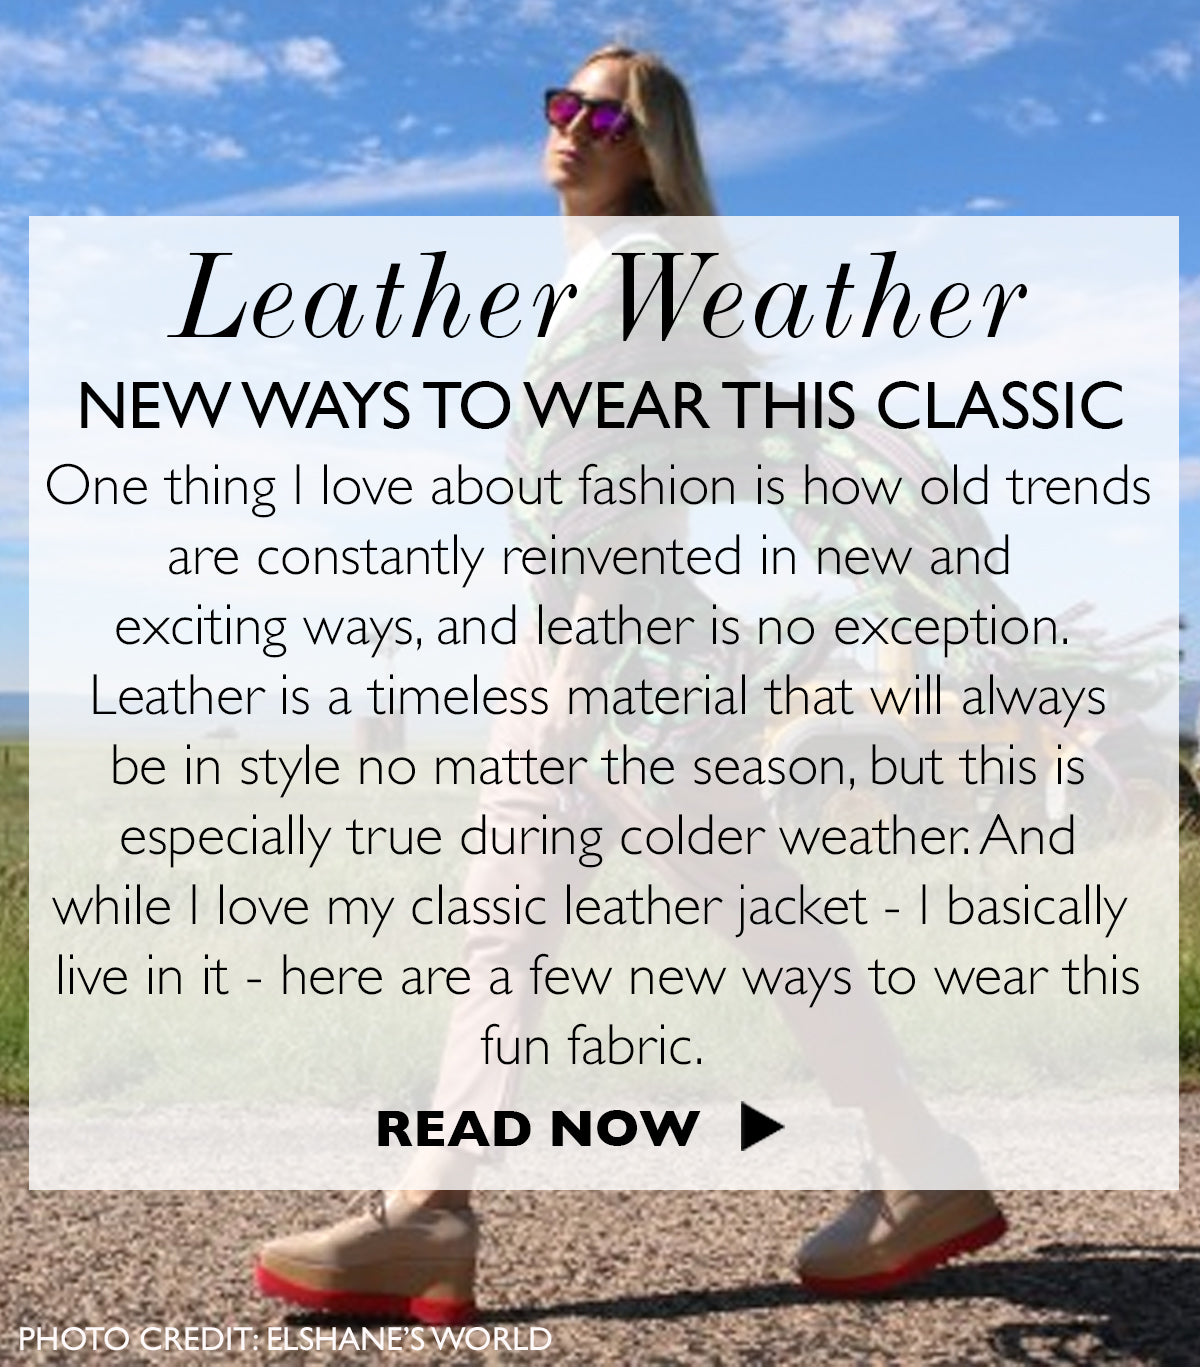 MB Style Guide | Leather Weather: New Ways To Wear This Classic